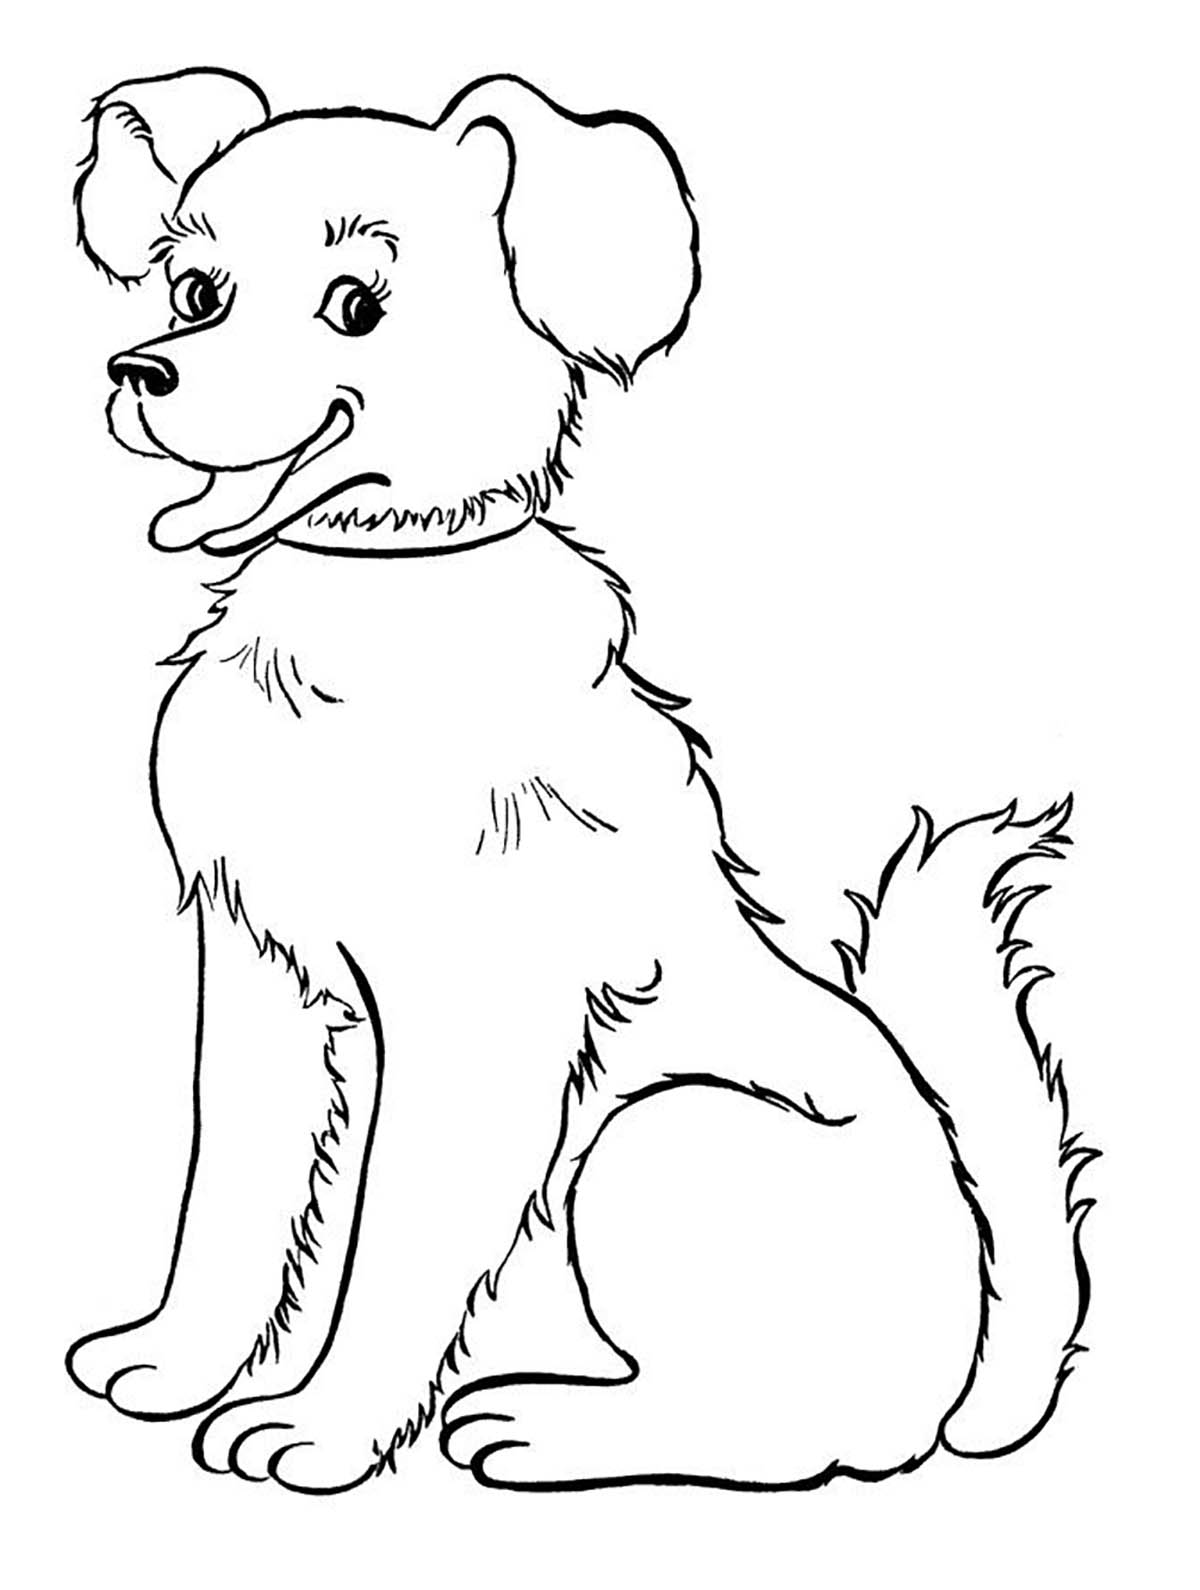 Dog for children : smiling dog - Dogs Kids Coloring Pages